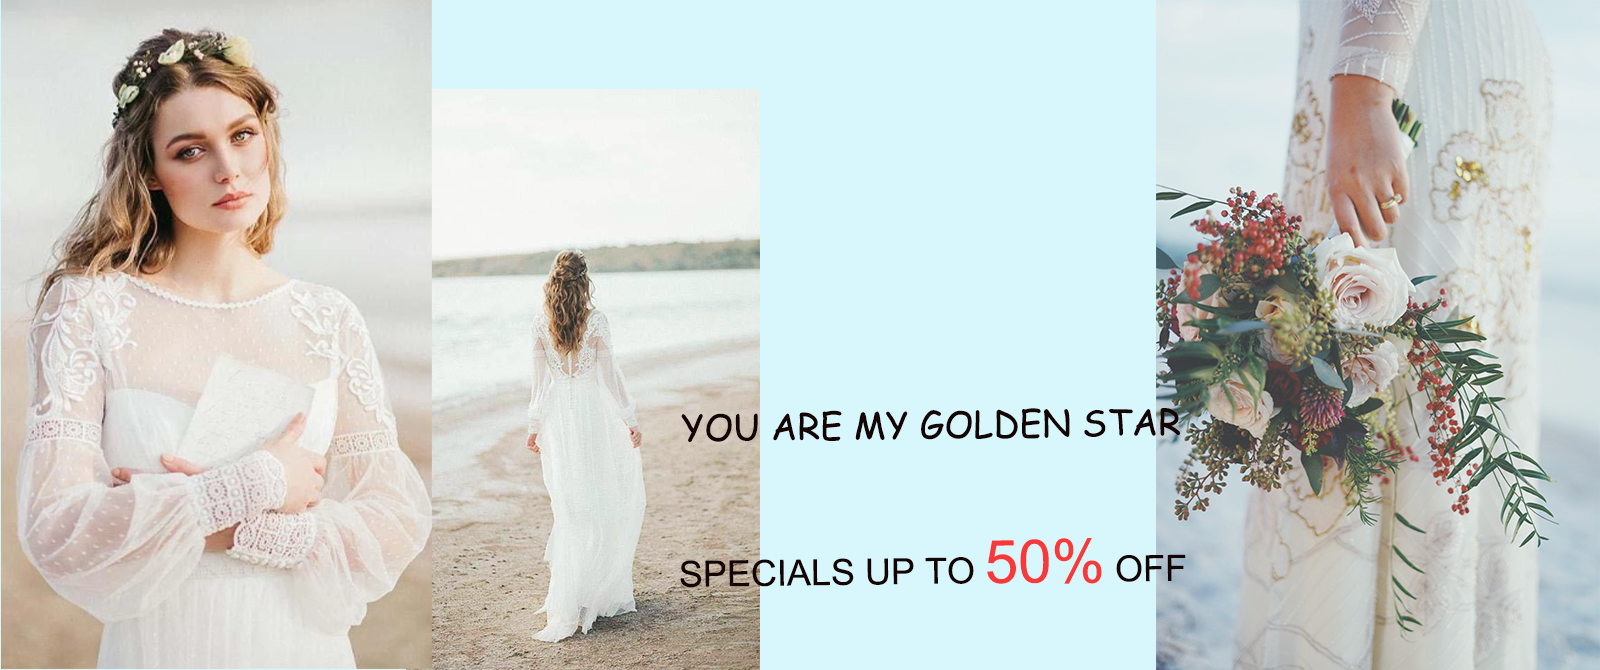 jolilis.com sells prom dresses, wedding dresses,evening dresses, party dresses online.